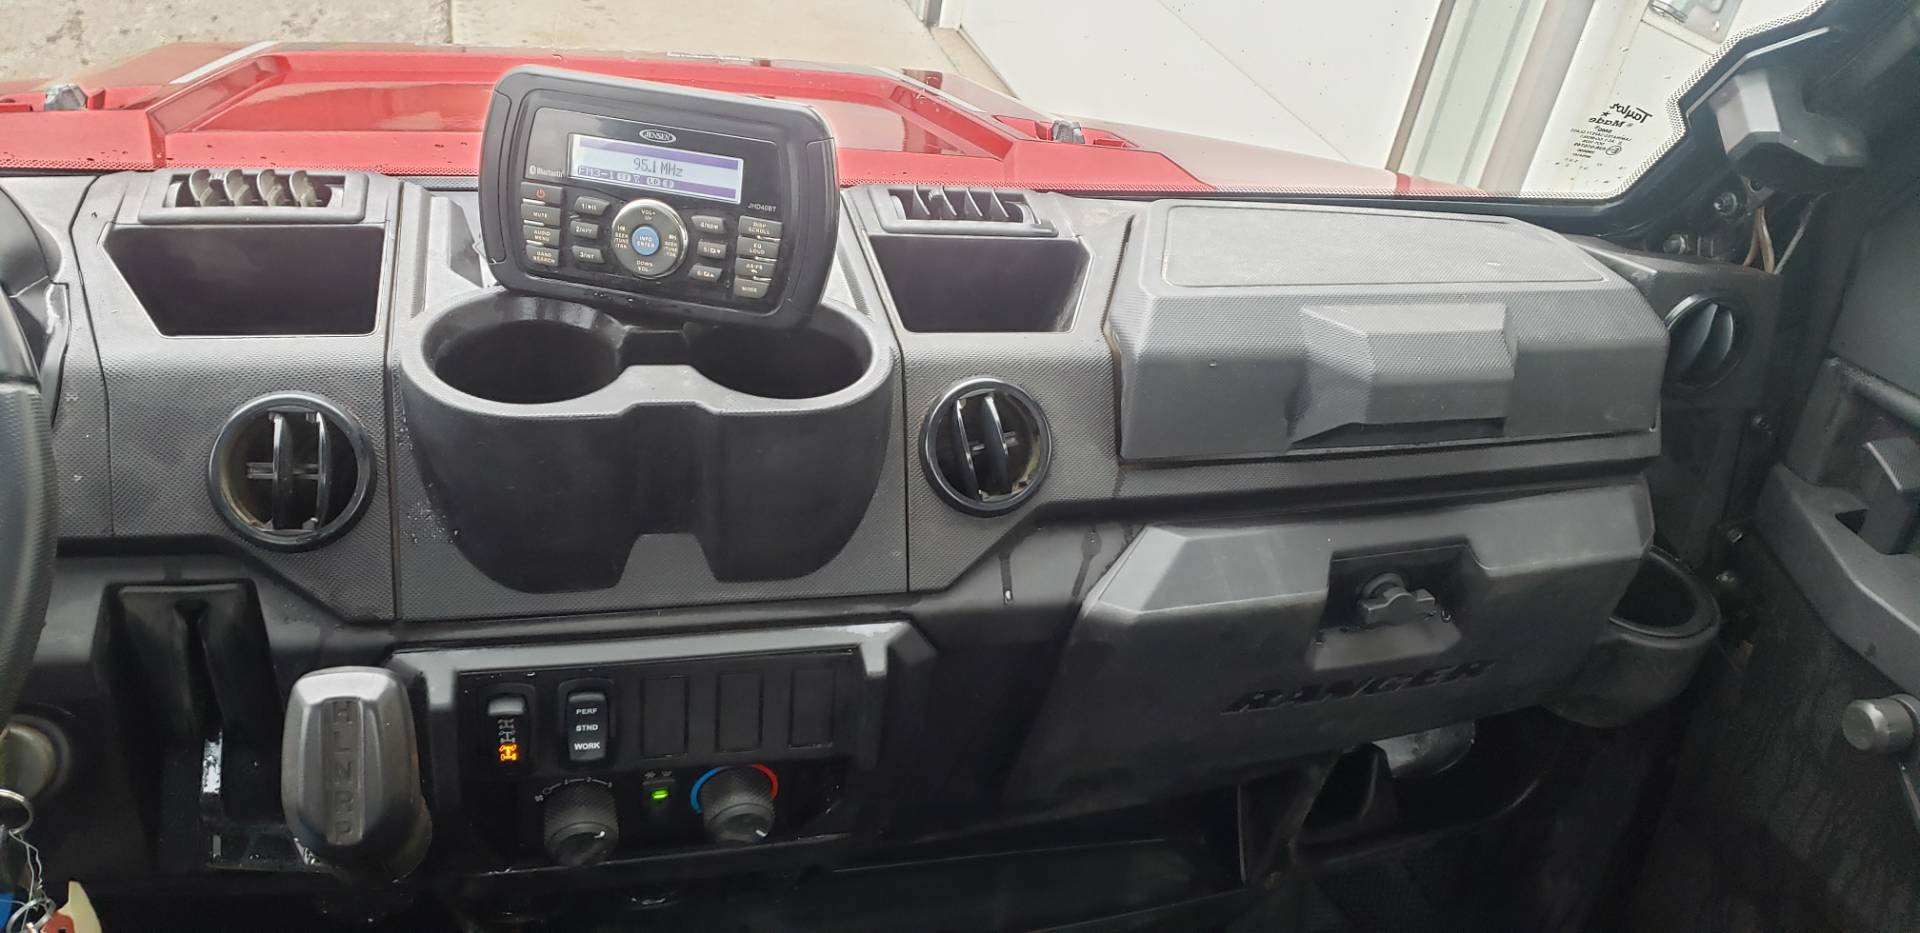 2018 Polaris Ranger XP 1000 EPS Northstar Edition in Rapid City, South Dakota - Photo 12